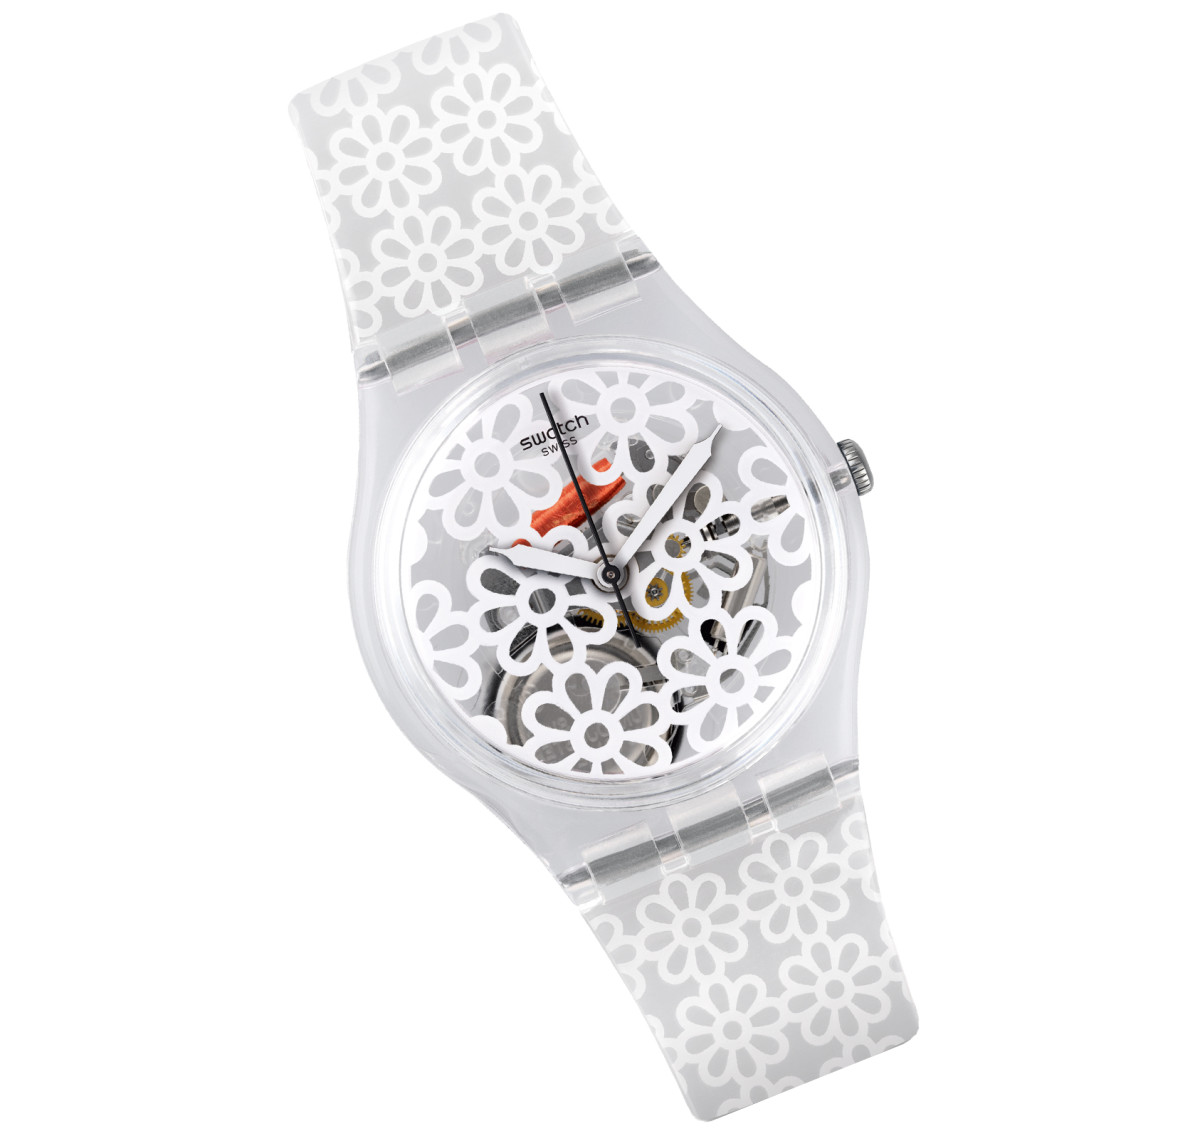 Swatch watch giveaway_Swatch Eisblume